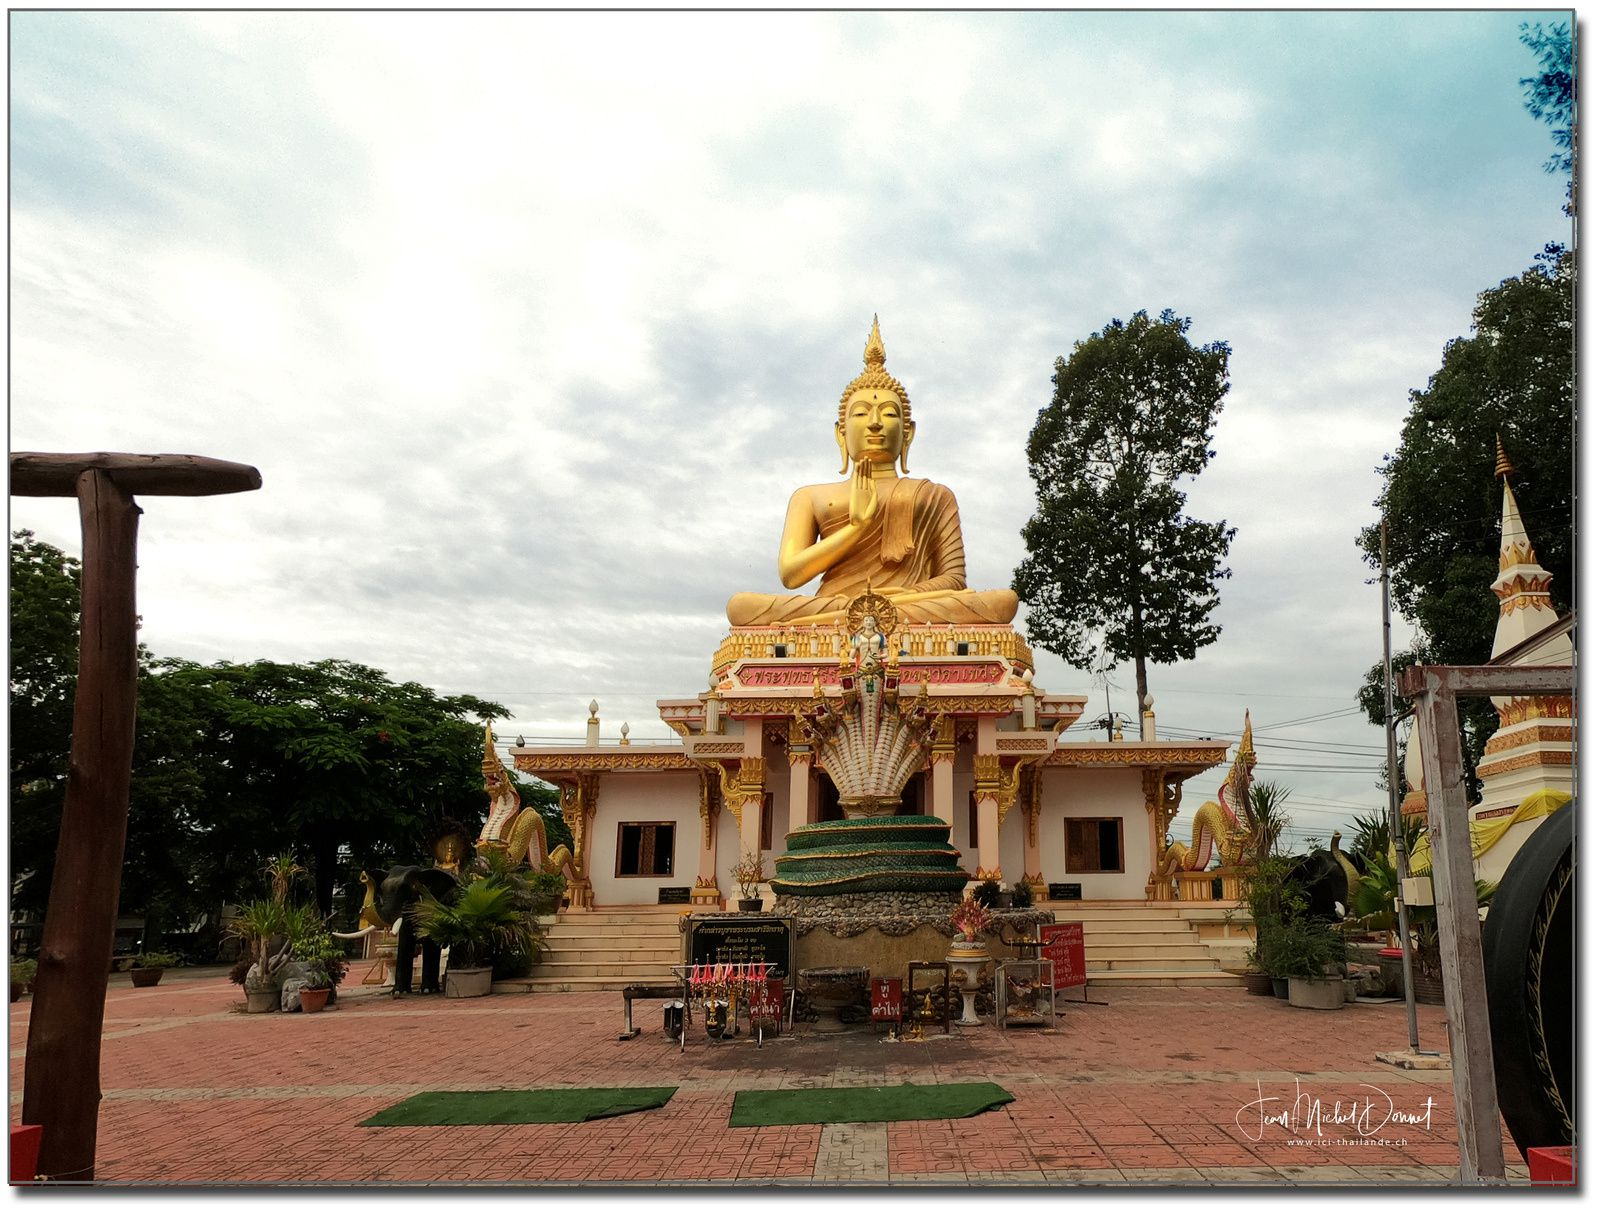 Wat Nakha Thewee (Province d'Udon Thani)